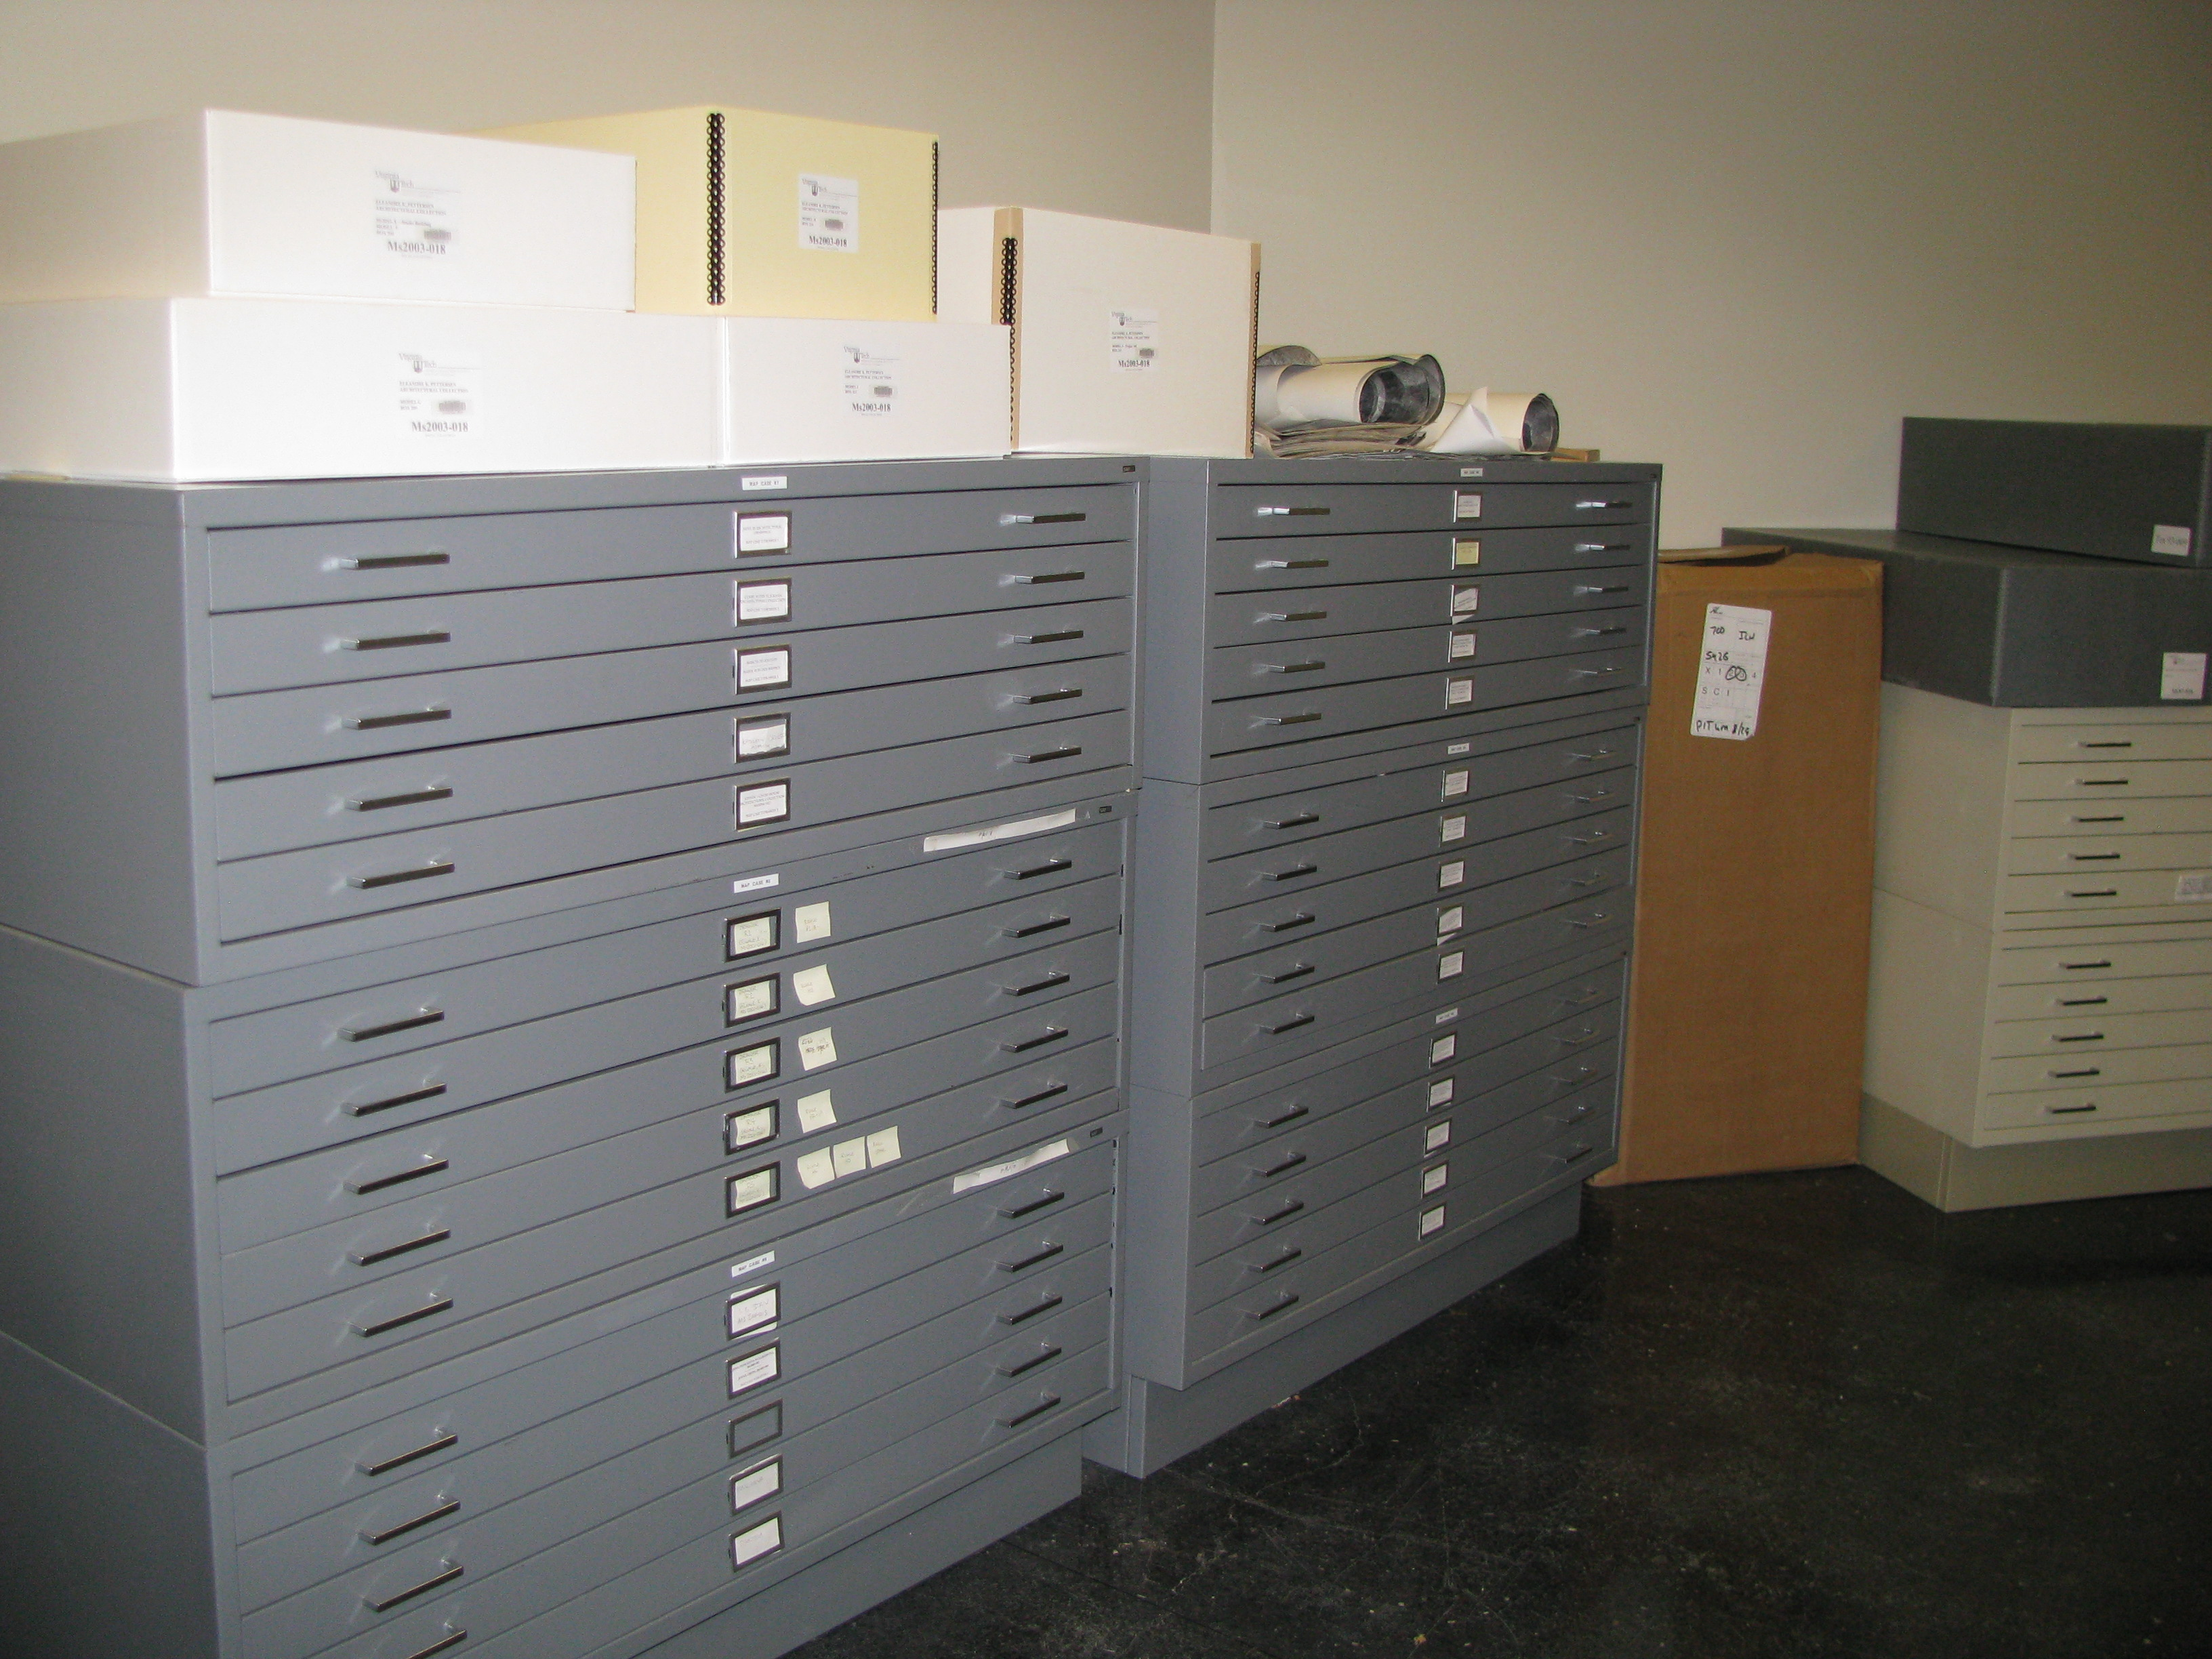 Boxes on top of these map cases contain textiles (while will be moved to new shelving soon) and architectural models.